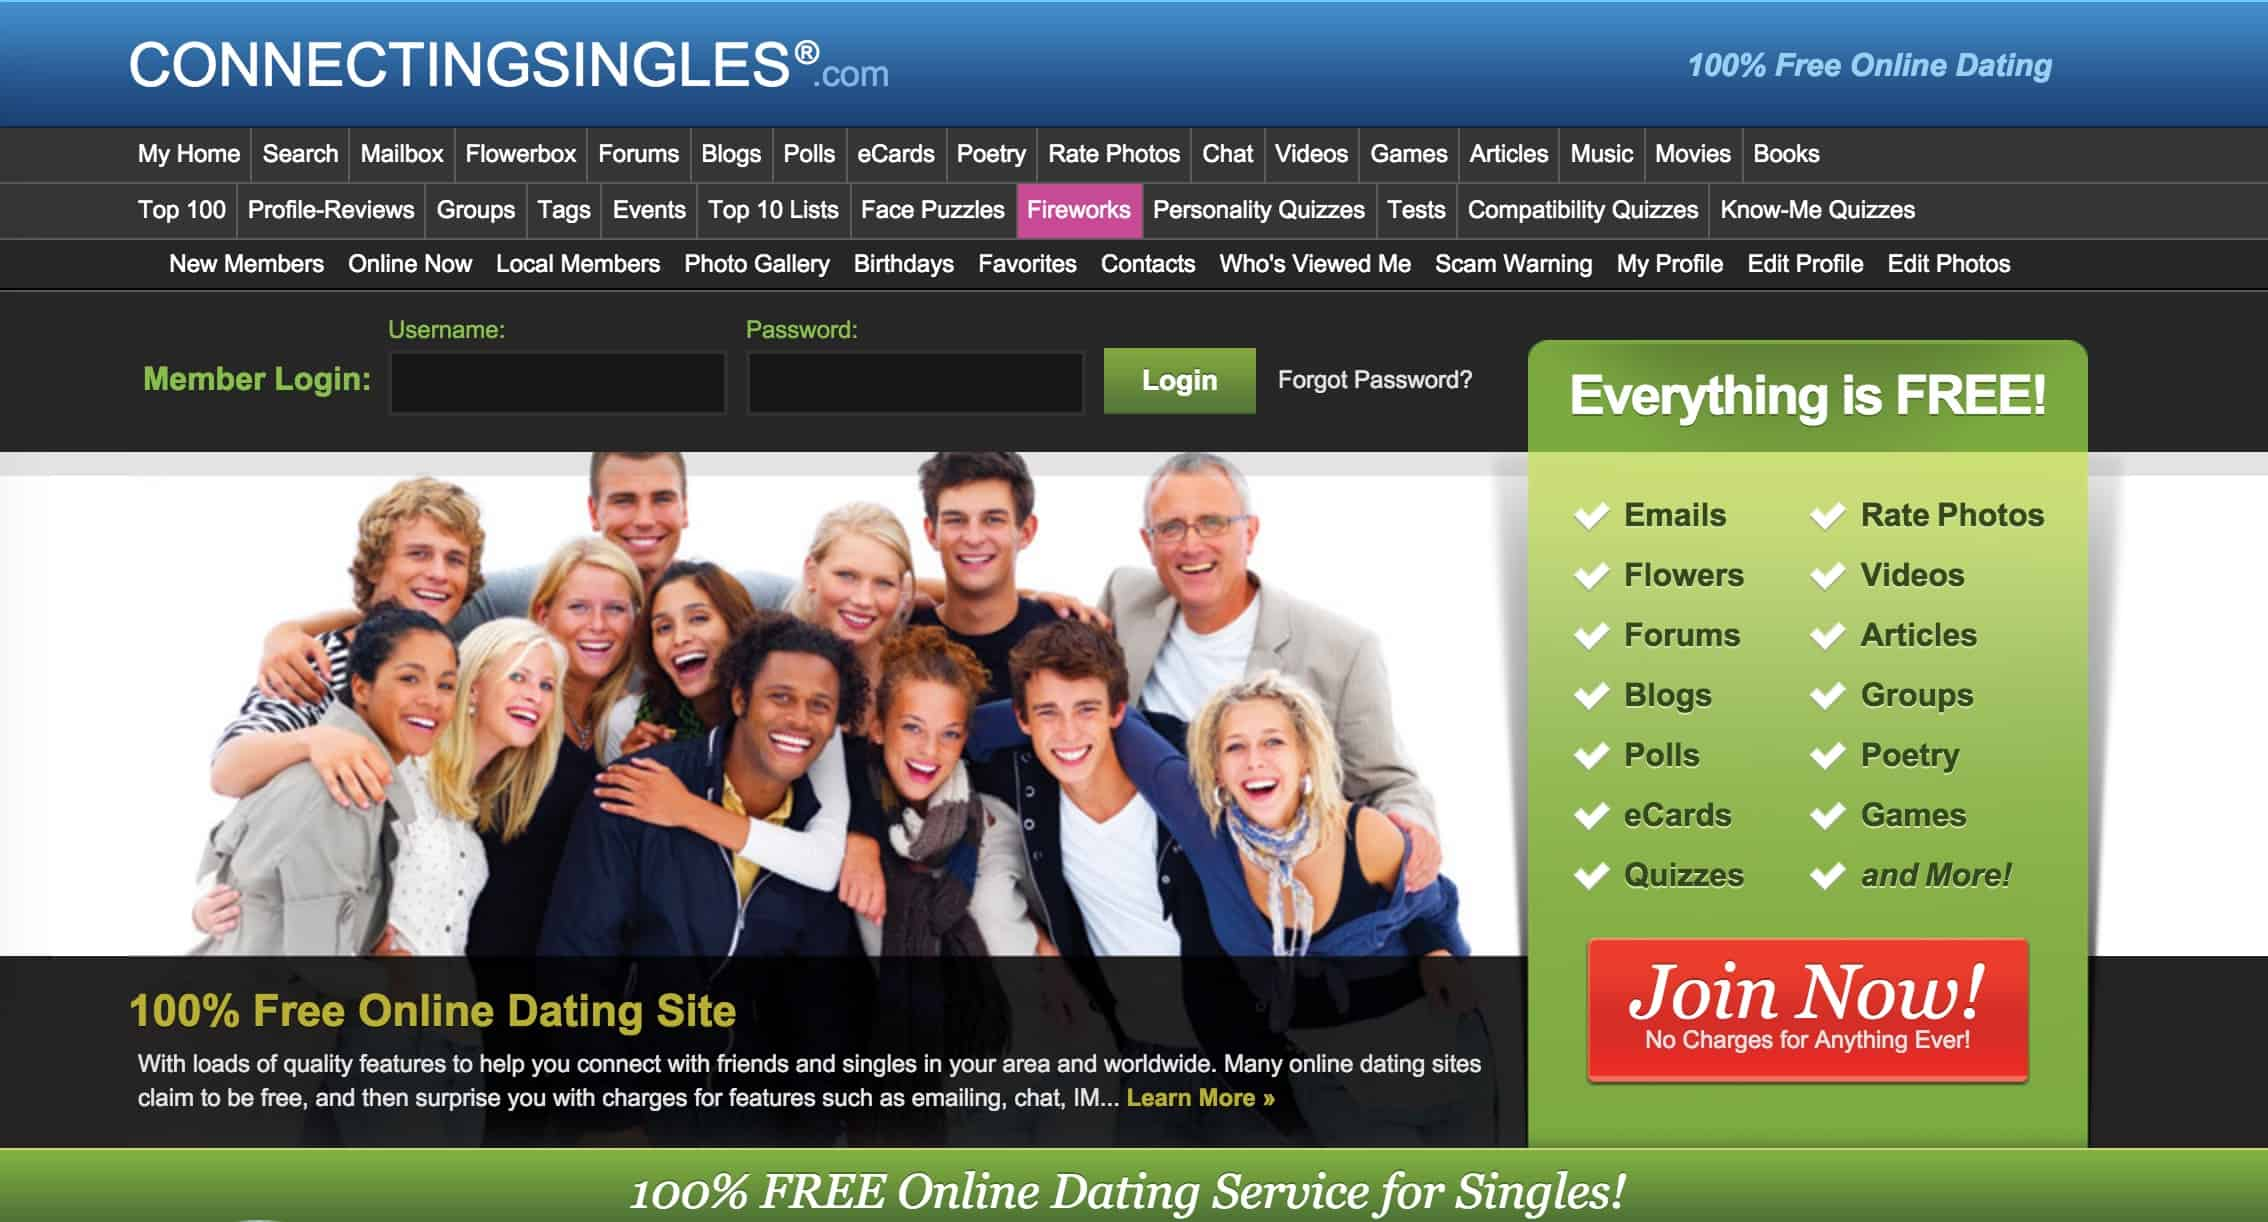 100% free online dating in wallkill 100% free wallkill (new york) dating site for local single men and women join one of the best american online singles service and meet lonely people to date and chat in wallkill(united states).